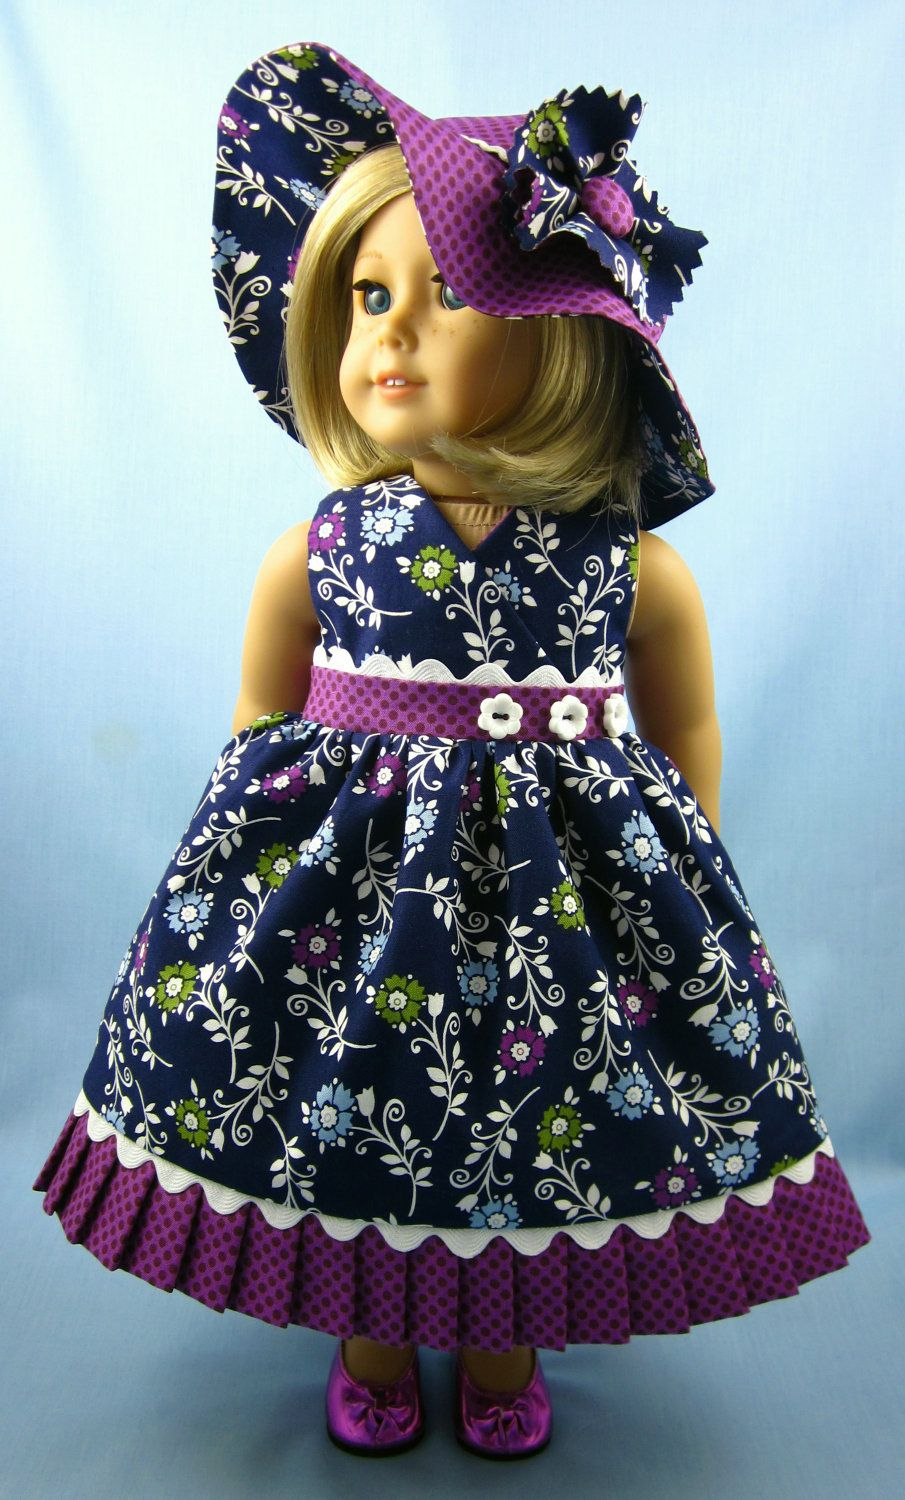 Sundress and Hat in Navy and Plum.